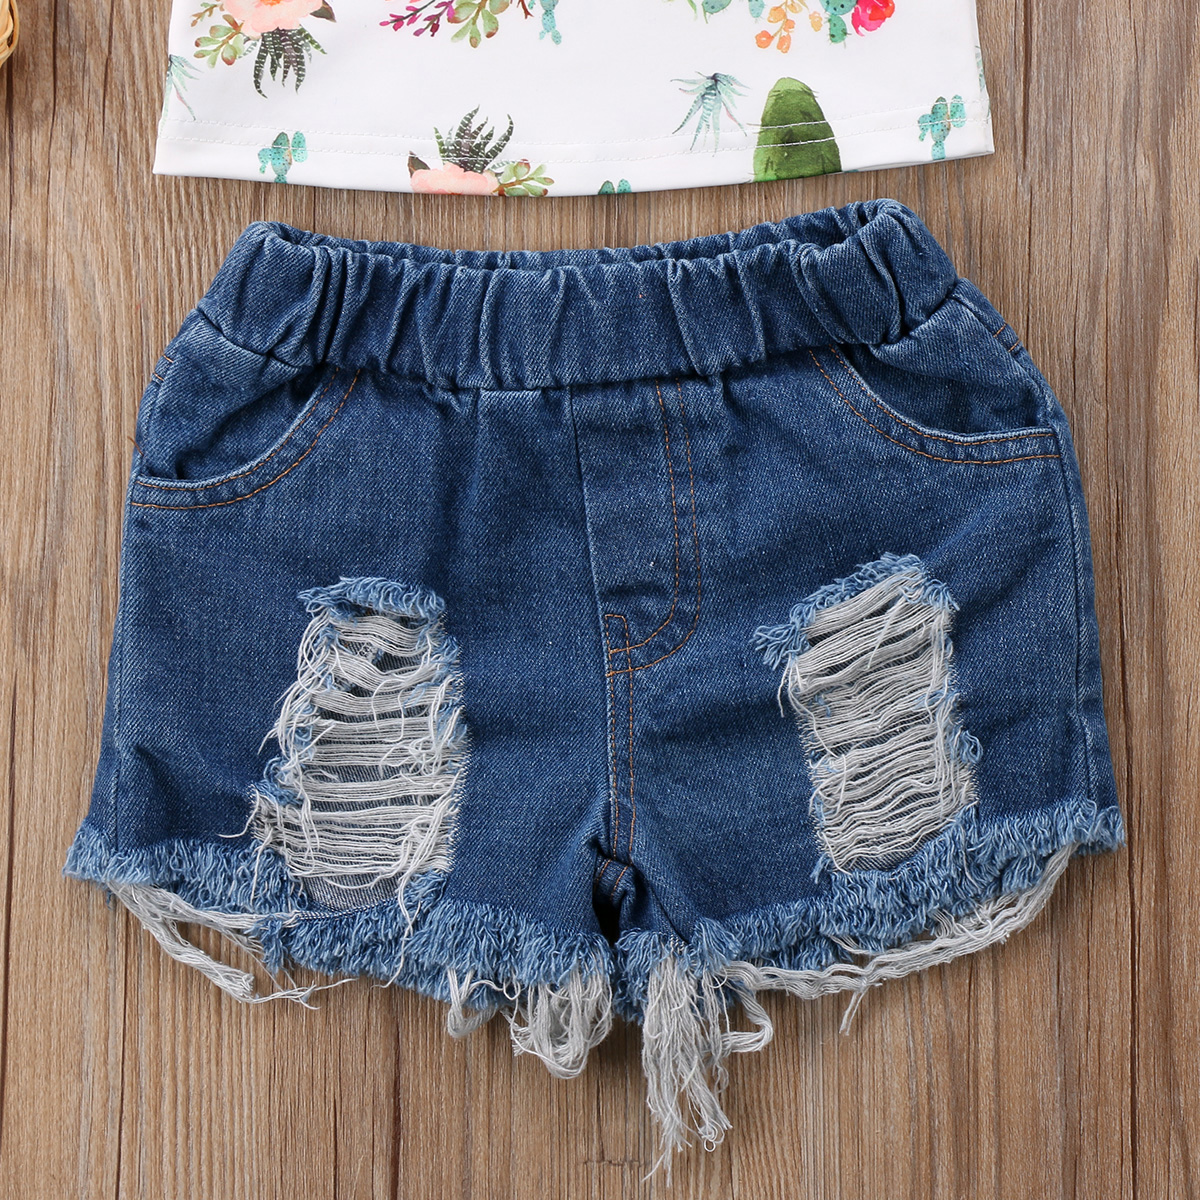 Mother & Kids Girls' Clothing Fashion Toddler Kids Baby Girl Off Shoulder Cactus Blouse Tops+ripped Denim Shorts Jeans 2pcs Outfits Clothing Set